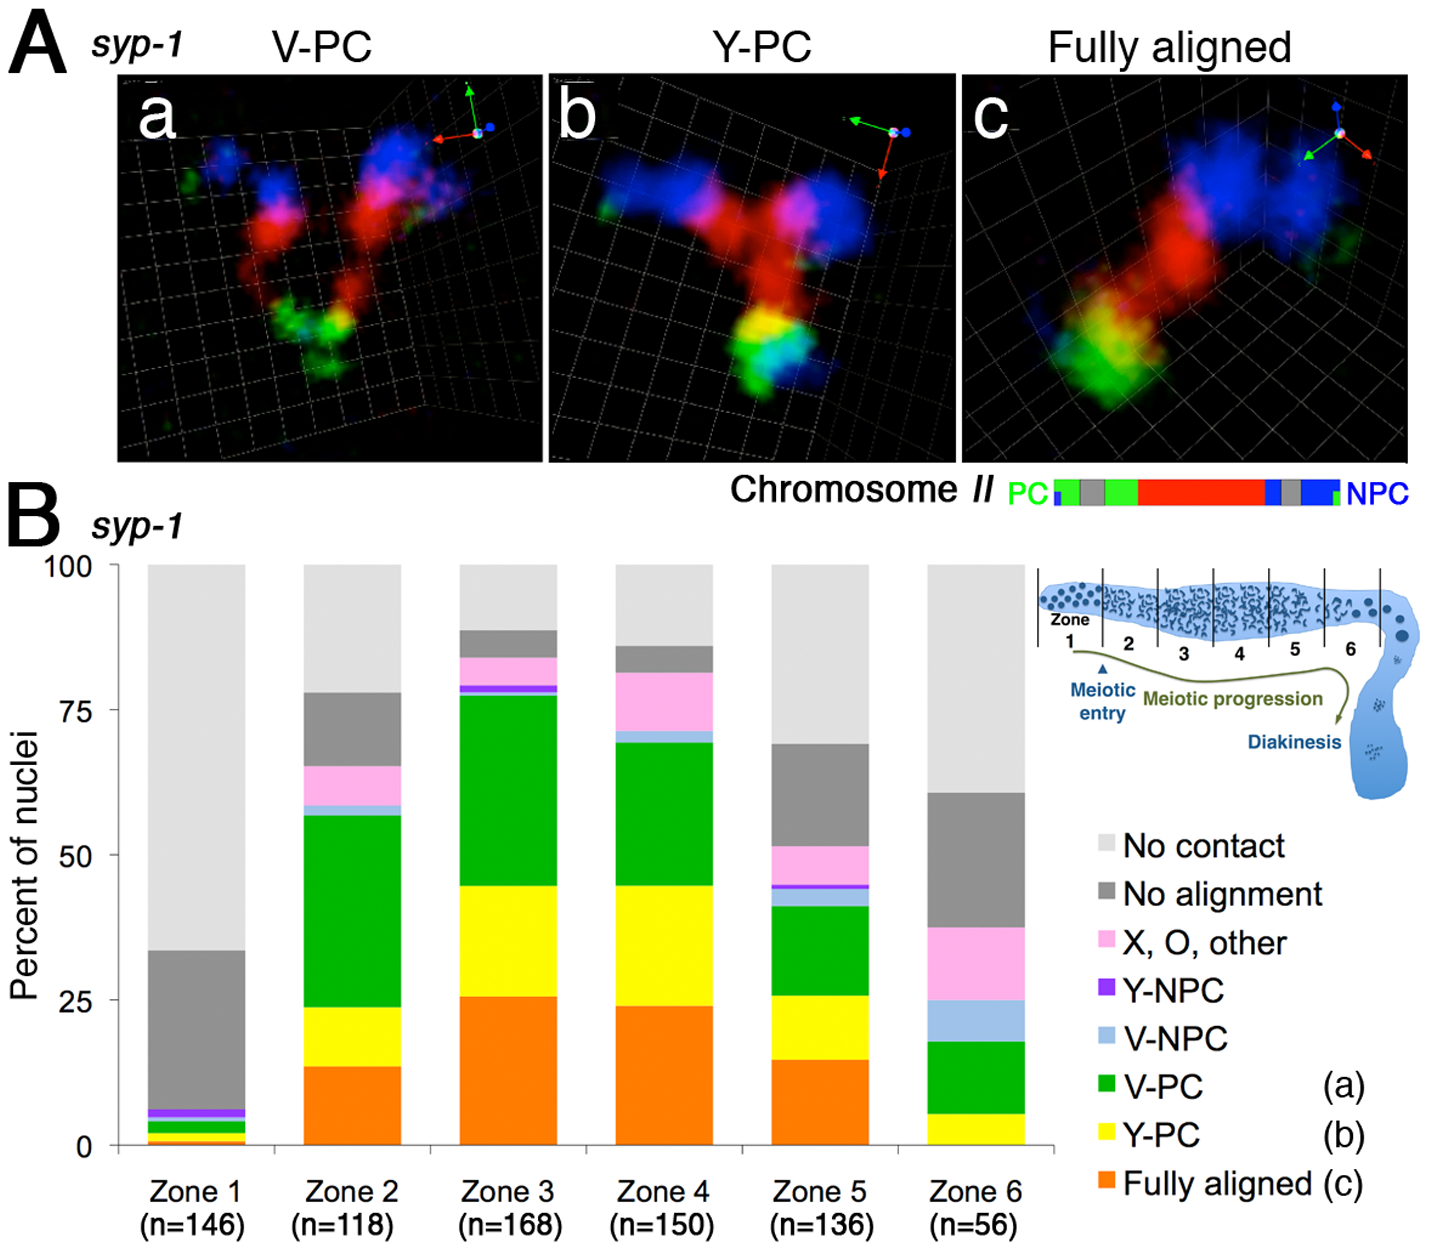 Homologous chromosomes can achieve full alignment in the absence of synaptonemal complex formation.